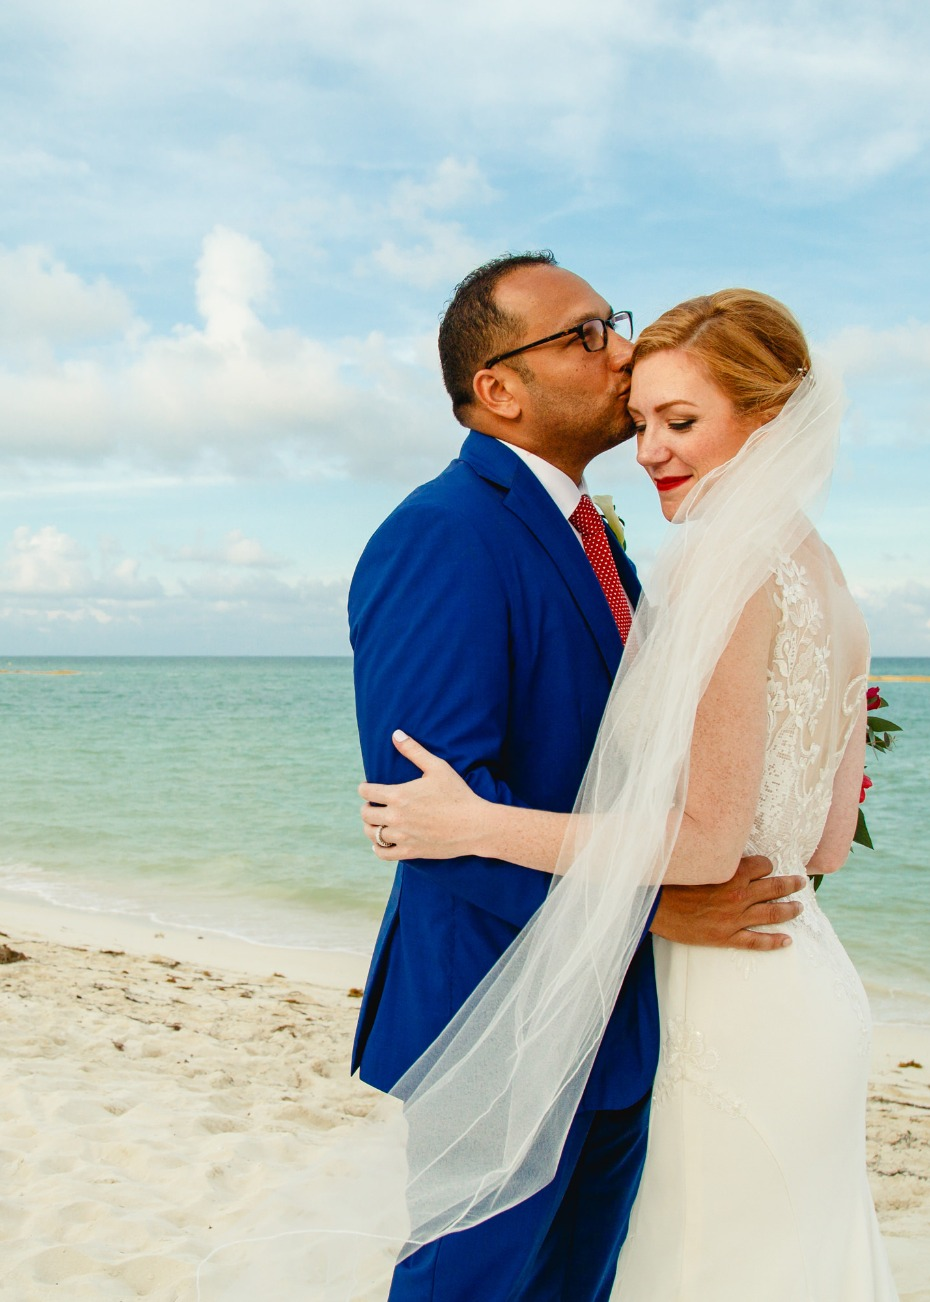 Romantic and colorful beach wedding in Mexico